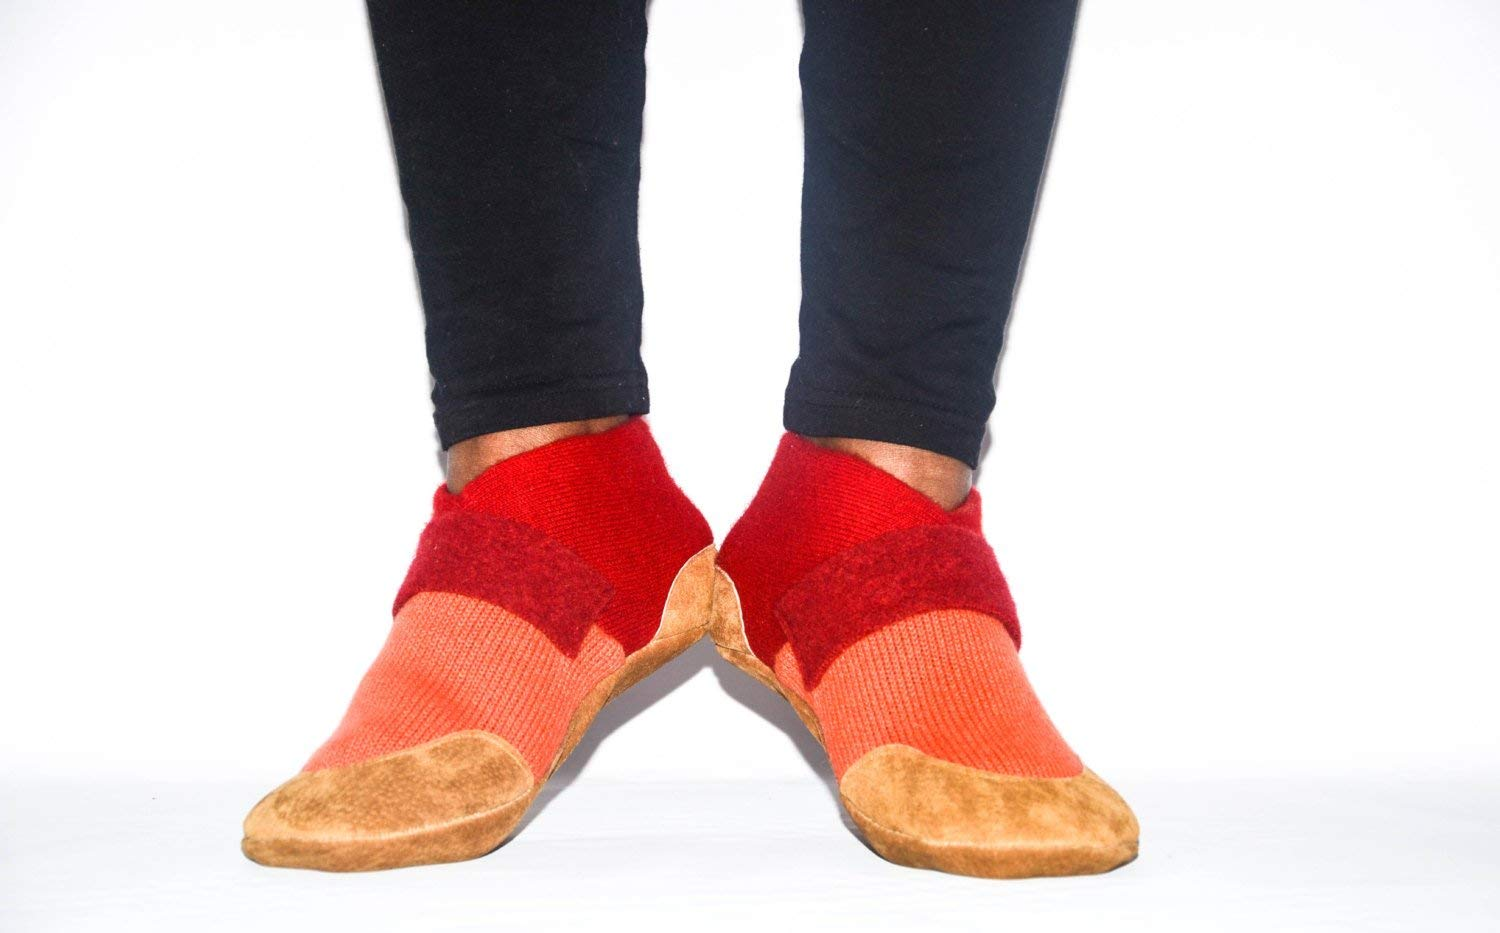 Unisex Cashmere Shoes from Recycled Materials, Eco-friendly Men & Women Valentines Cashmere Shoes